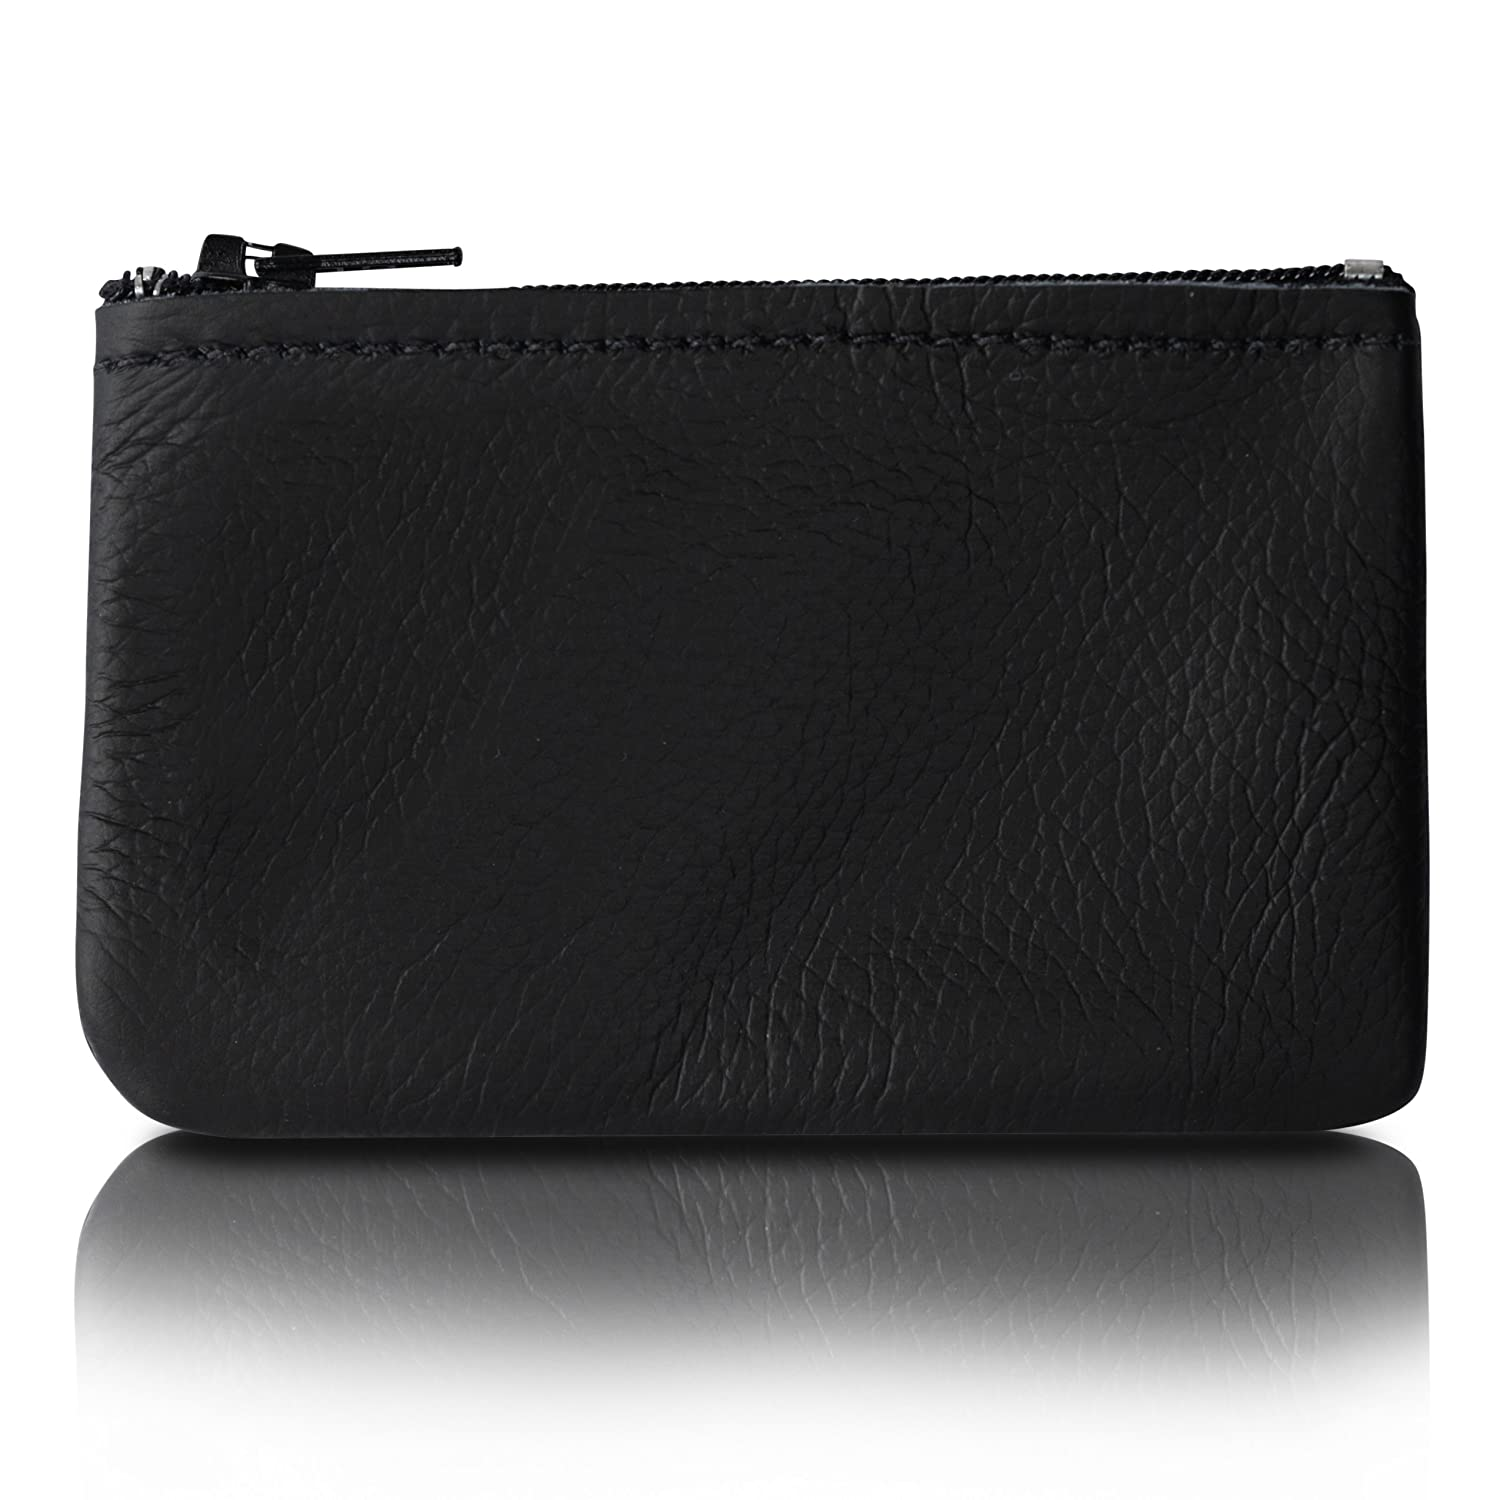 Zippered Coin Pouch, Change holder For Men/Woman made with Genuine Leather, Coin Purse, Pouch Size 4x2.5 inches, Made IN USA Made IN USA (Black) coinsm-bl